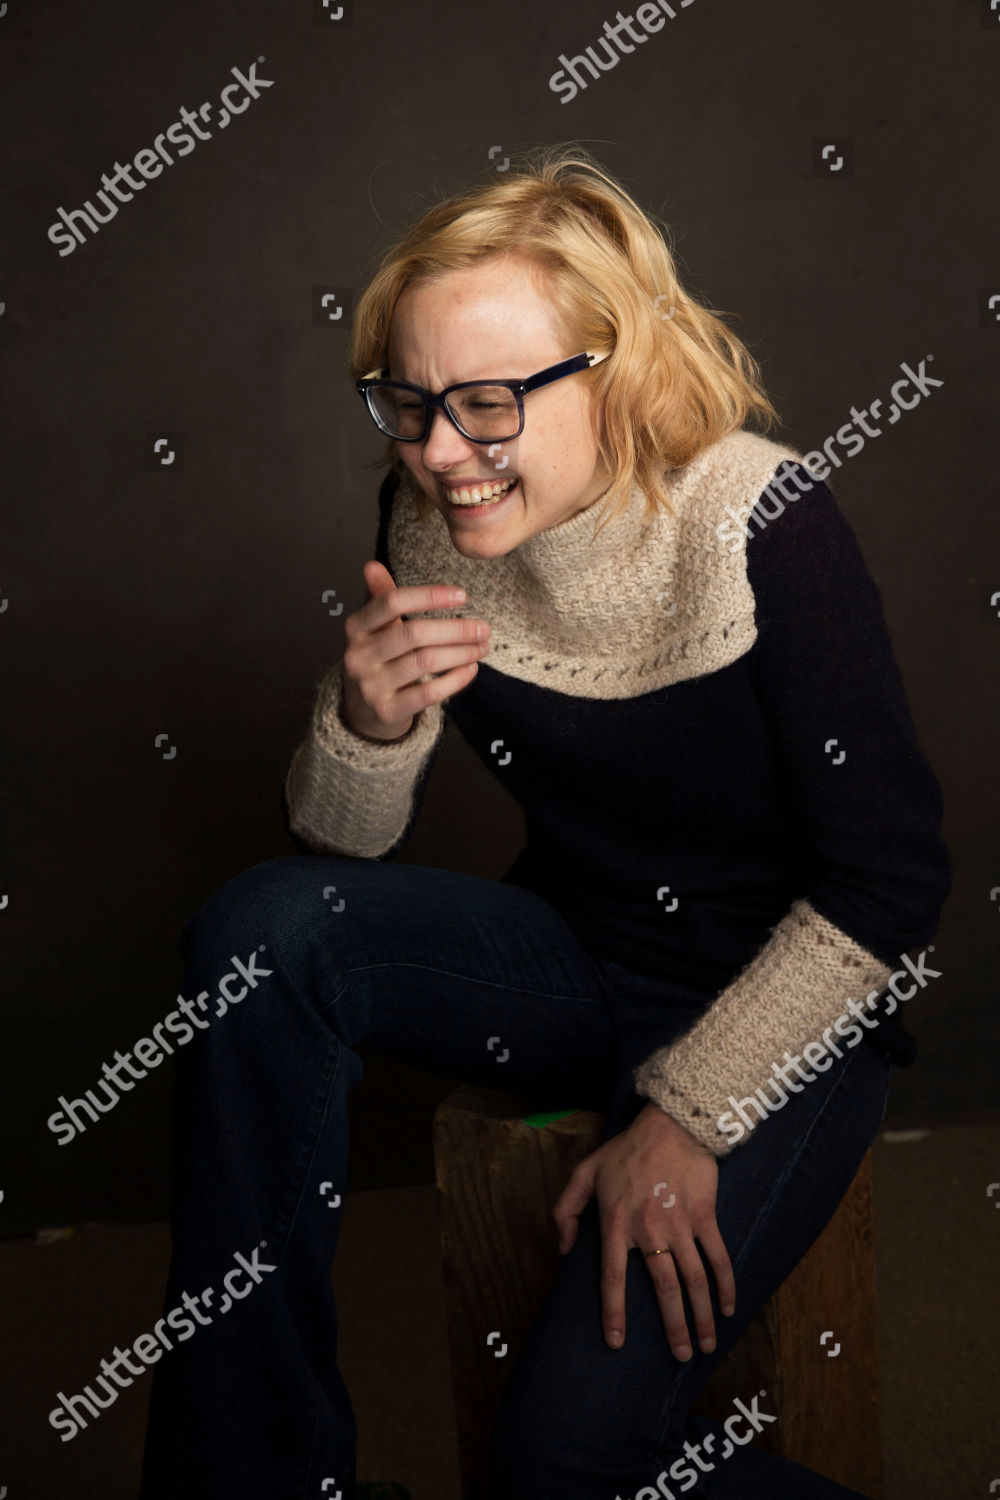 Alison Pill Fotos alison pill poses portrait quaker good energy editorial